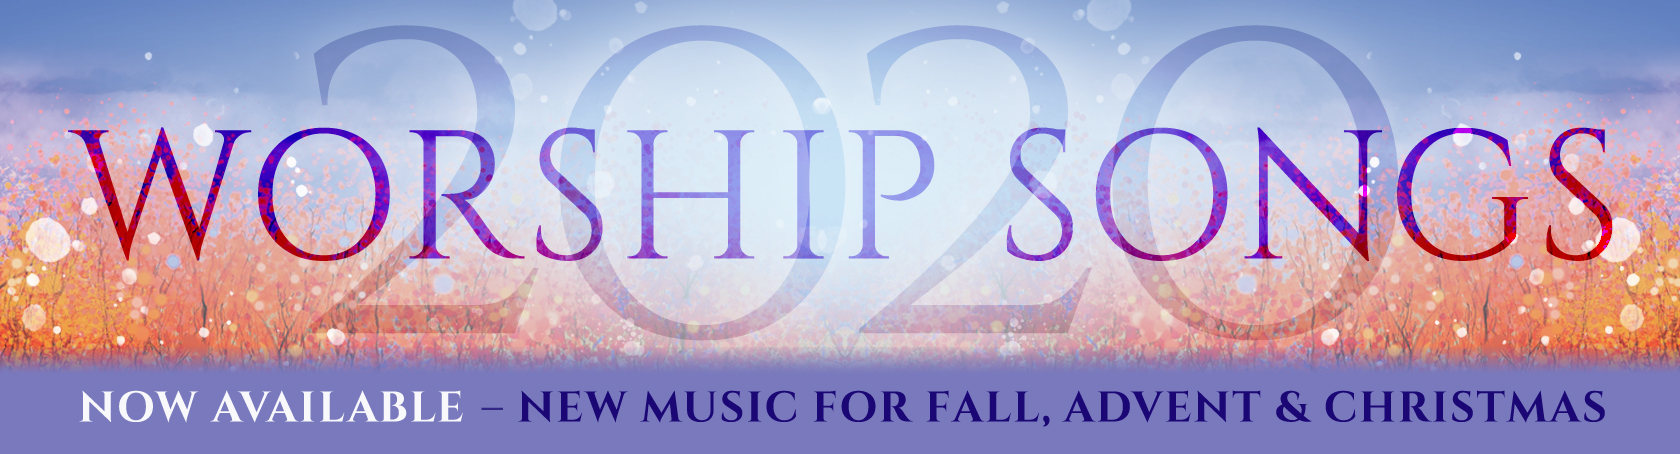 WorshipSongs Winter 2020